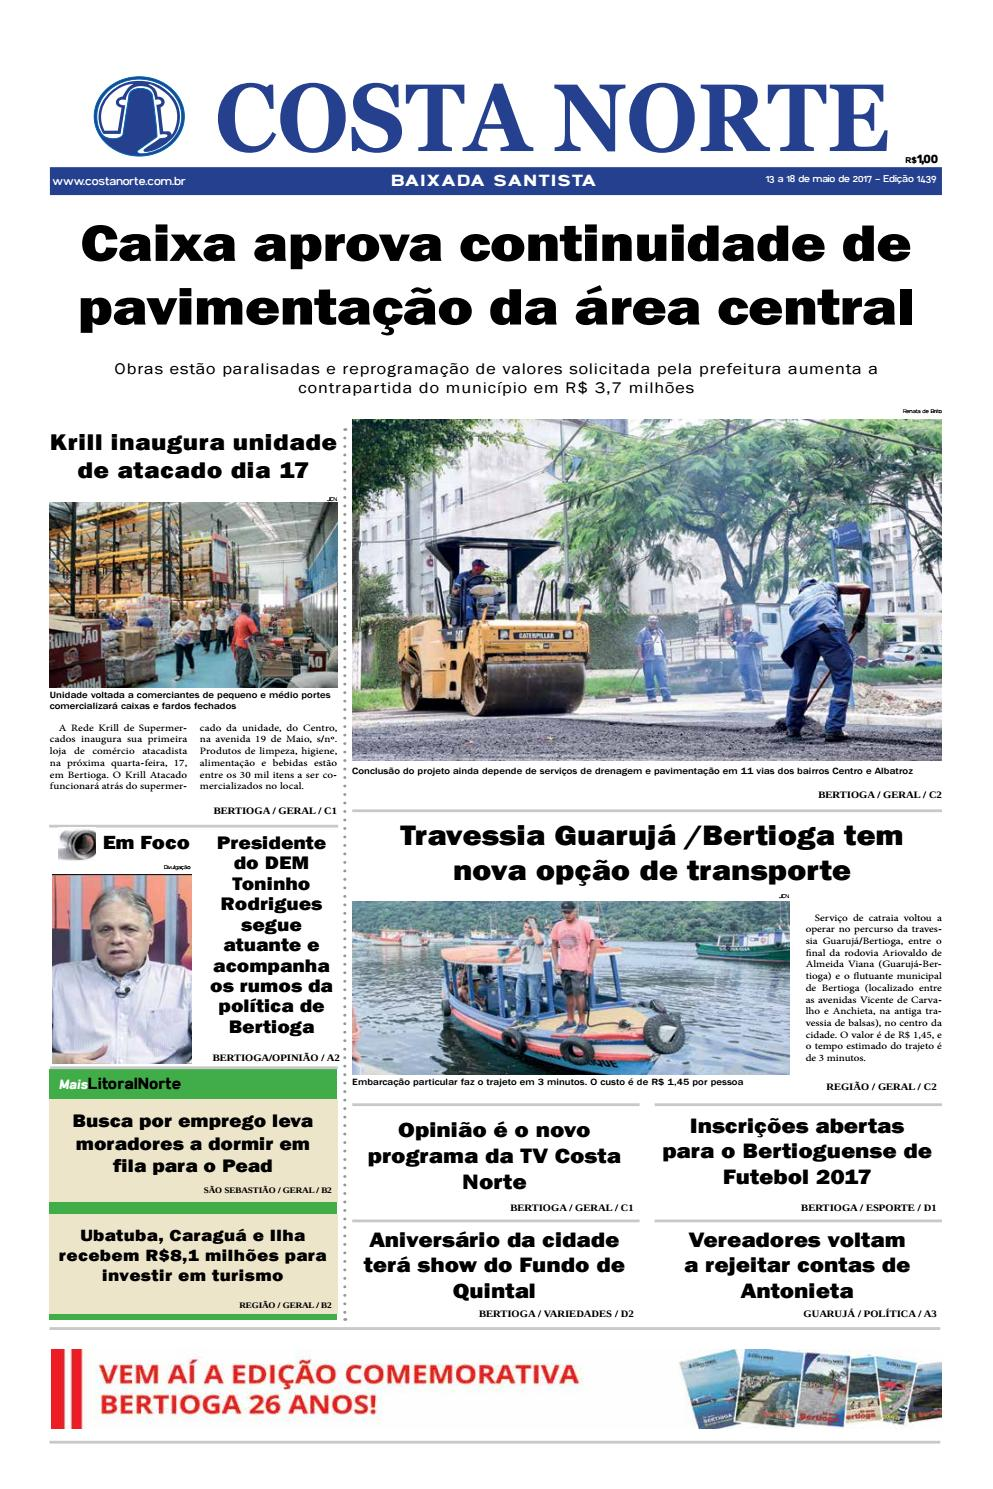 988c9c0b69 Jornal costa norte 1439 by Costa Norte - issuu